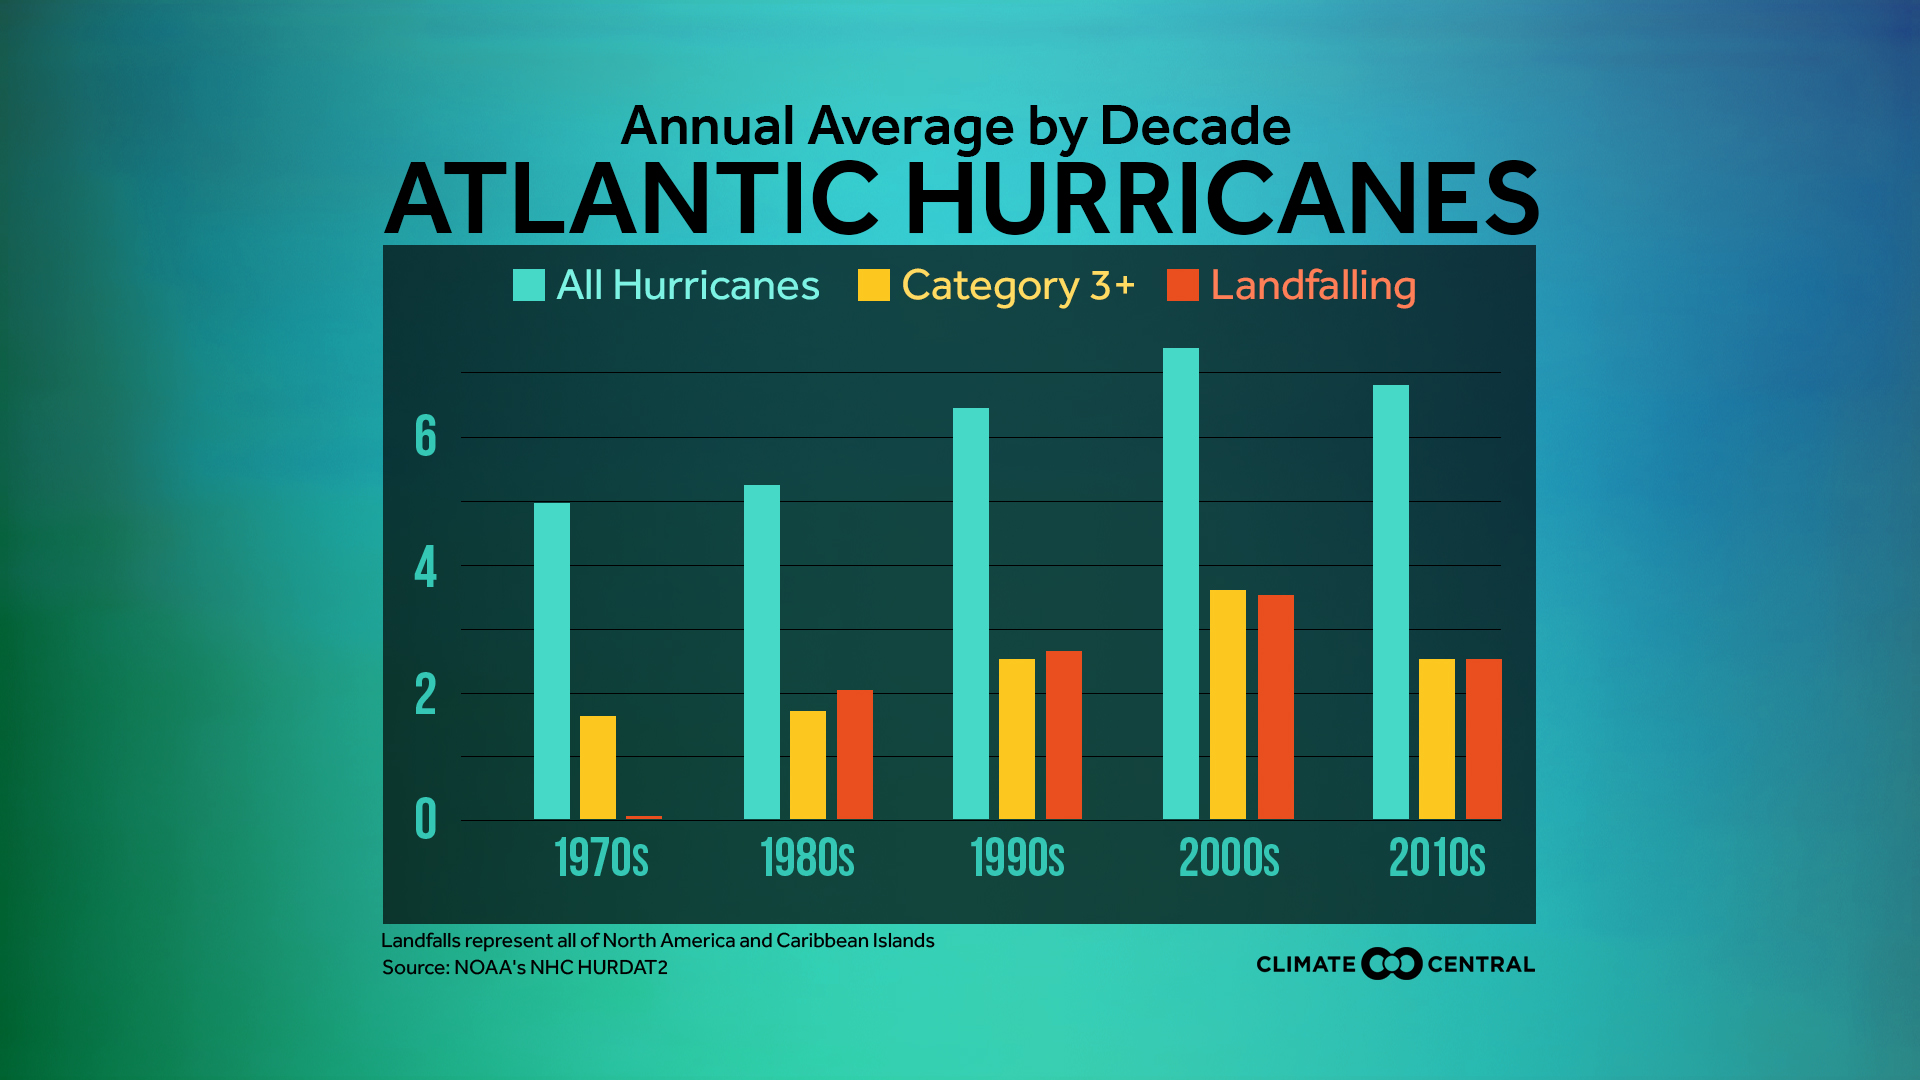 atlantic hurricanes by decade